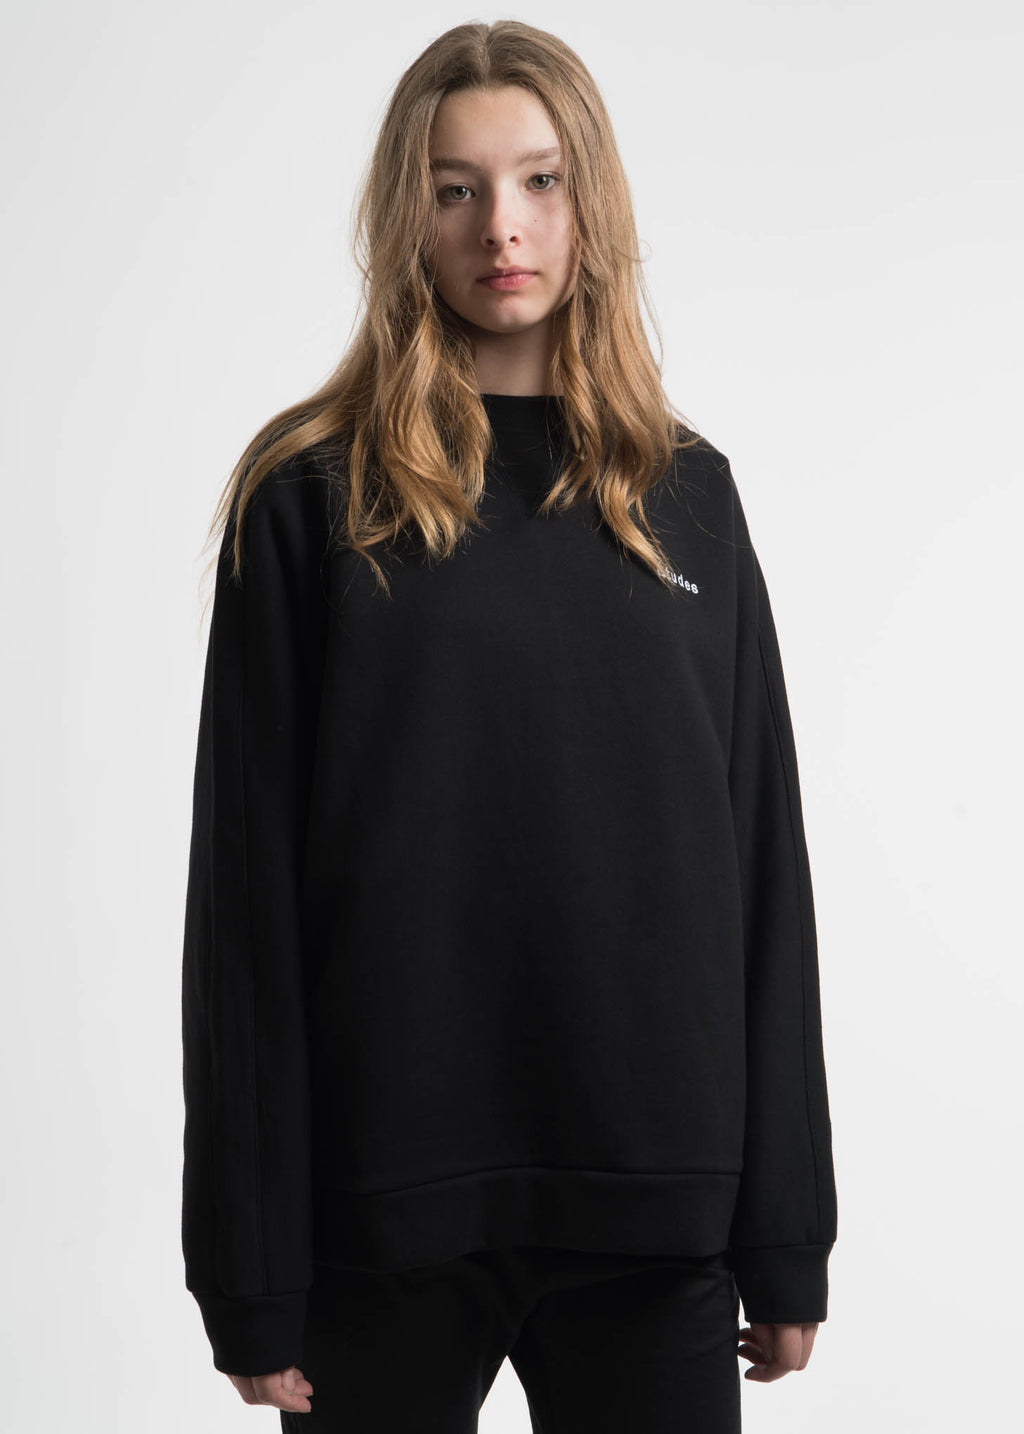 Etudes, Black Maybe Fleece Crewneck, 017 Shop